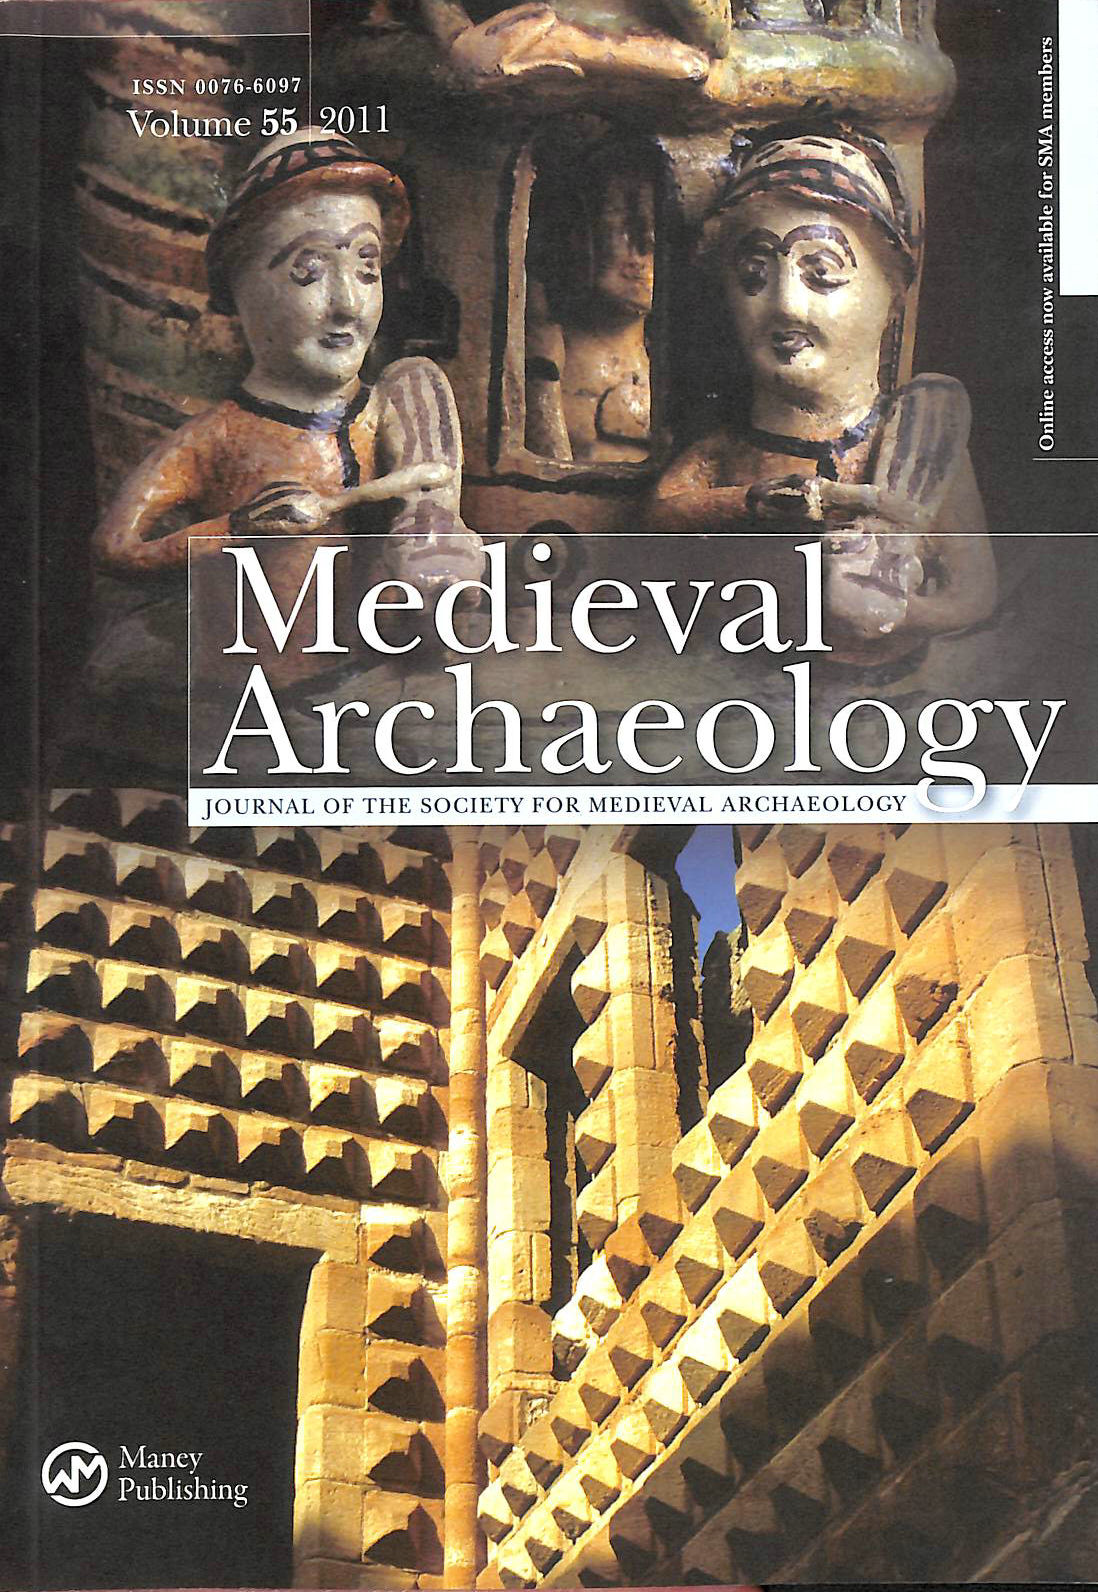 Image for Medieval Archaeology The Journal of the Society for Medieval Archaeology Volume 55 2011